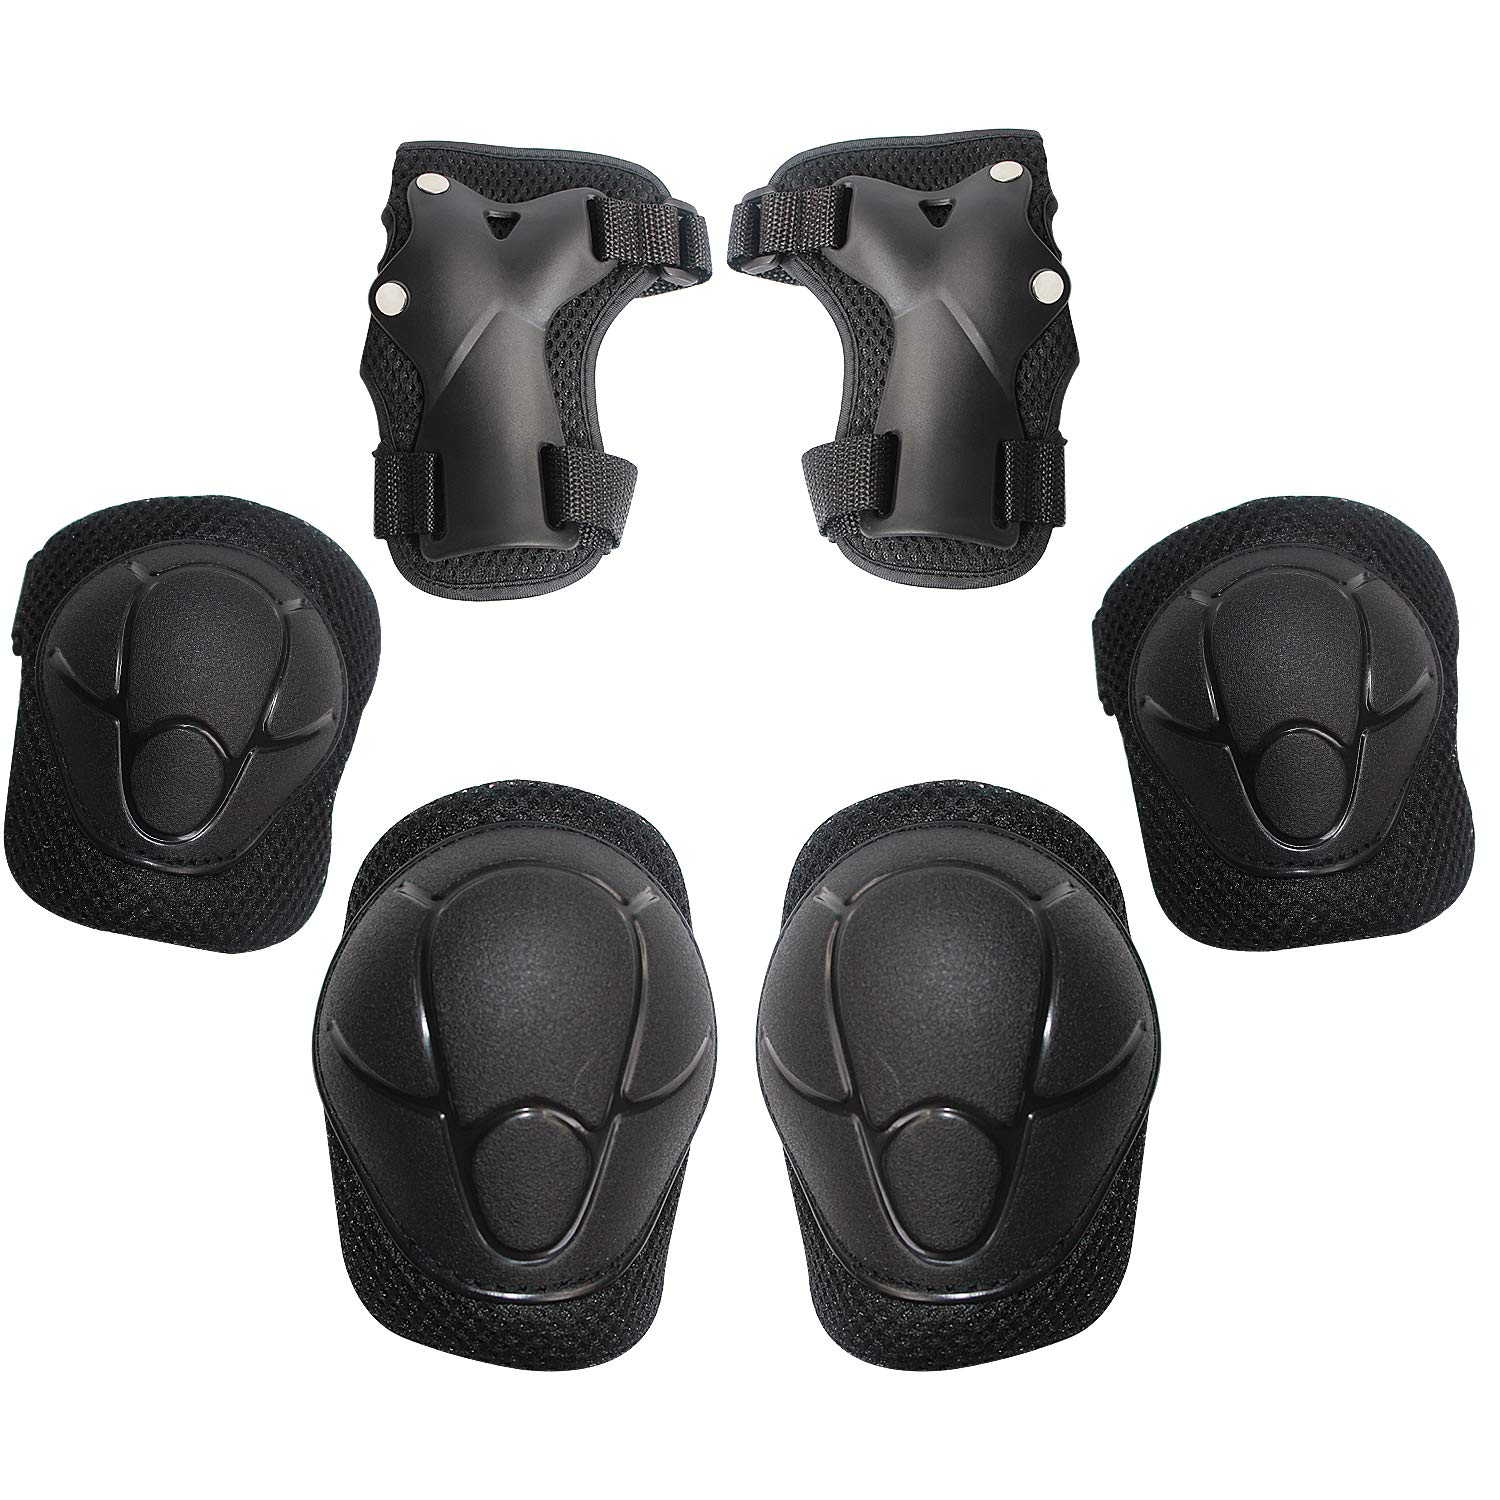 MiNiSports Kids/Youth Knee Pad Elbow Pads Guards Protective Gear Set for Rollerblade Roller Skates Cycling BMX Bike Skateboard Inline Skatings Scooter Riding Sports - Black by MiNiSports